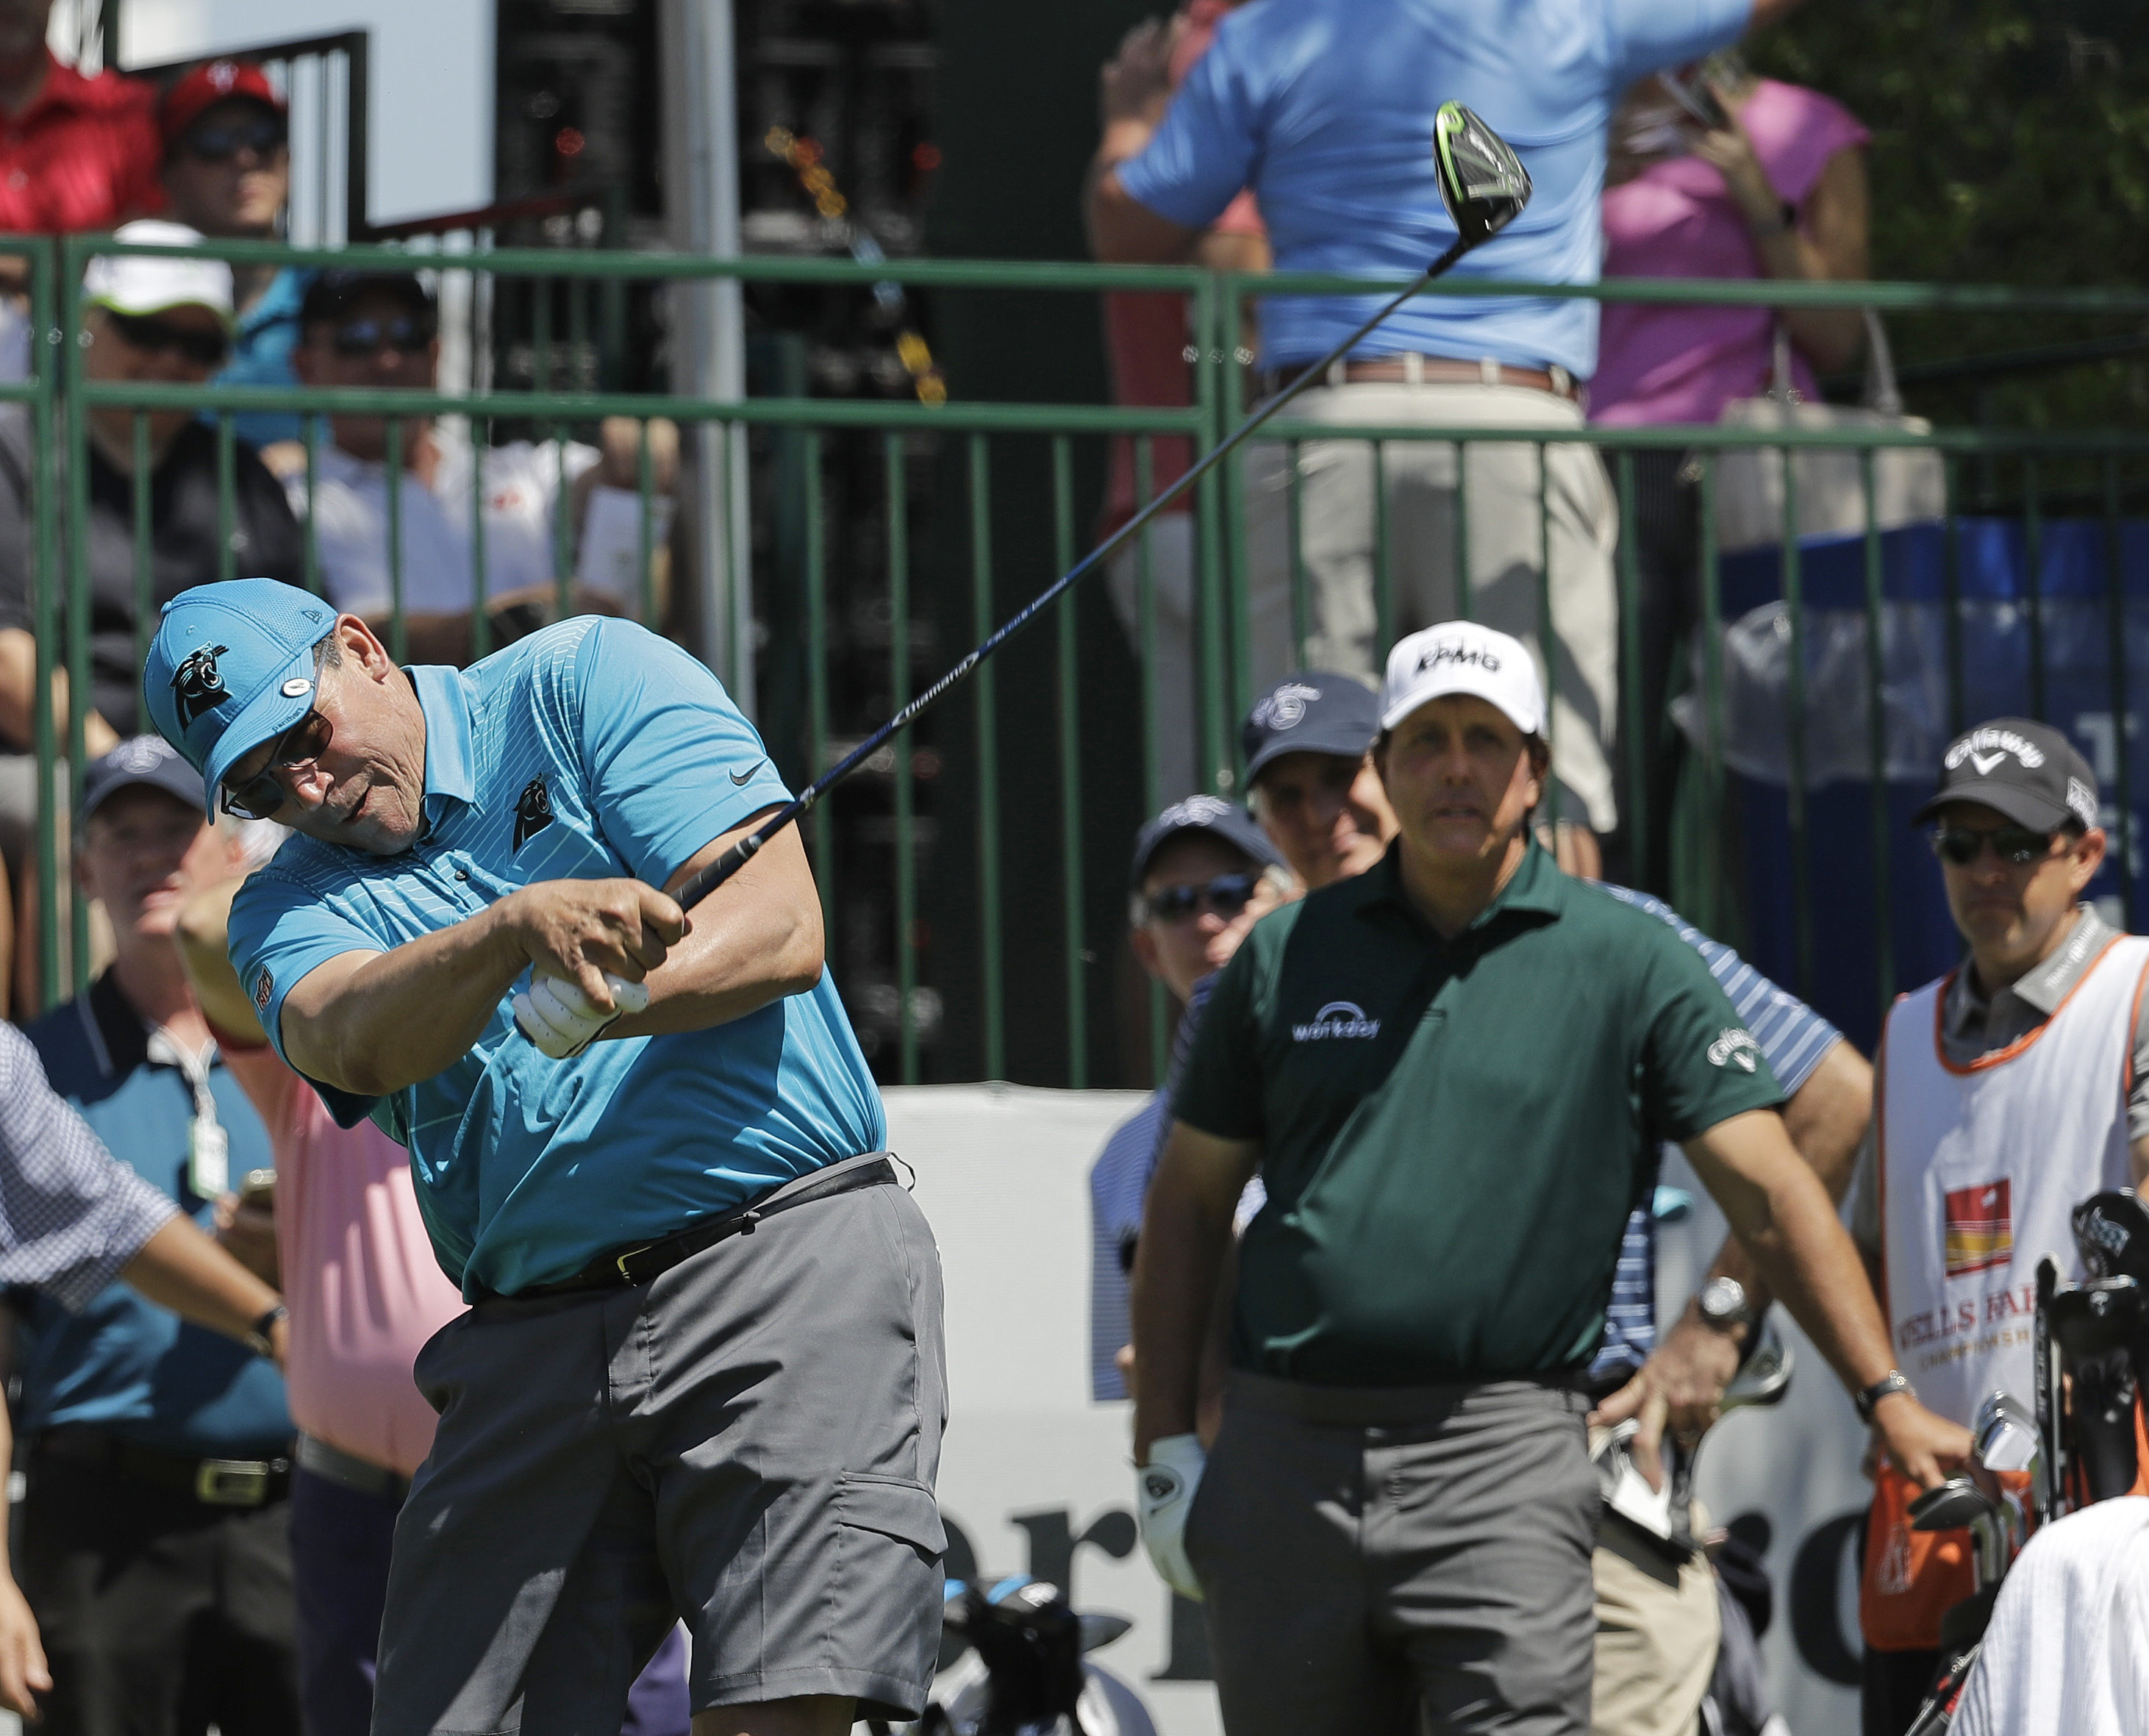 "<div class=""meta image-caption""><div class=""origin-logo origin-image ap""><span>AP</span></div><span class=""caption-text"">Carolina Panthers head coach Ron Rivera, left, hits his tee shot as Phil Mickelson, right, watches on the 10th hole. (Chuck Burton)</span></div>"